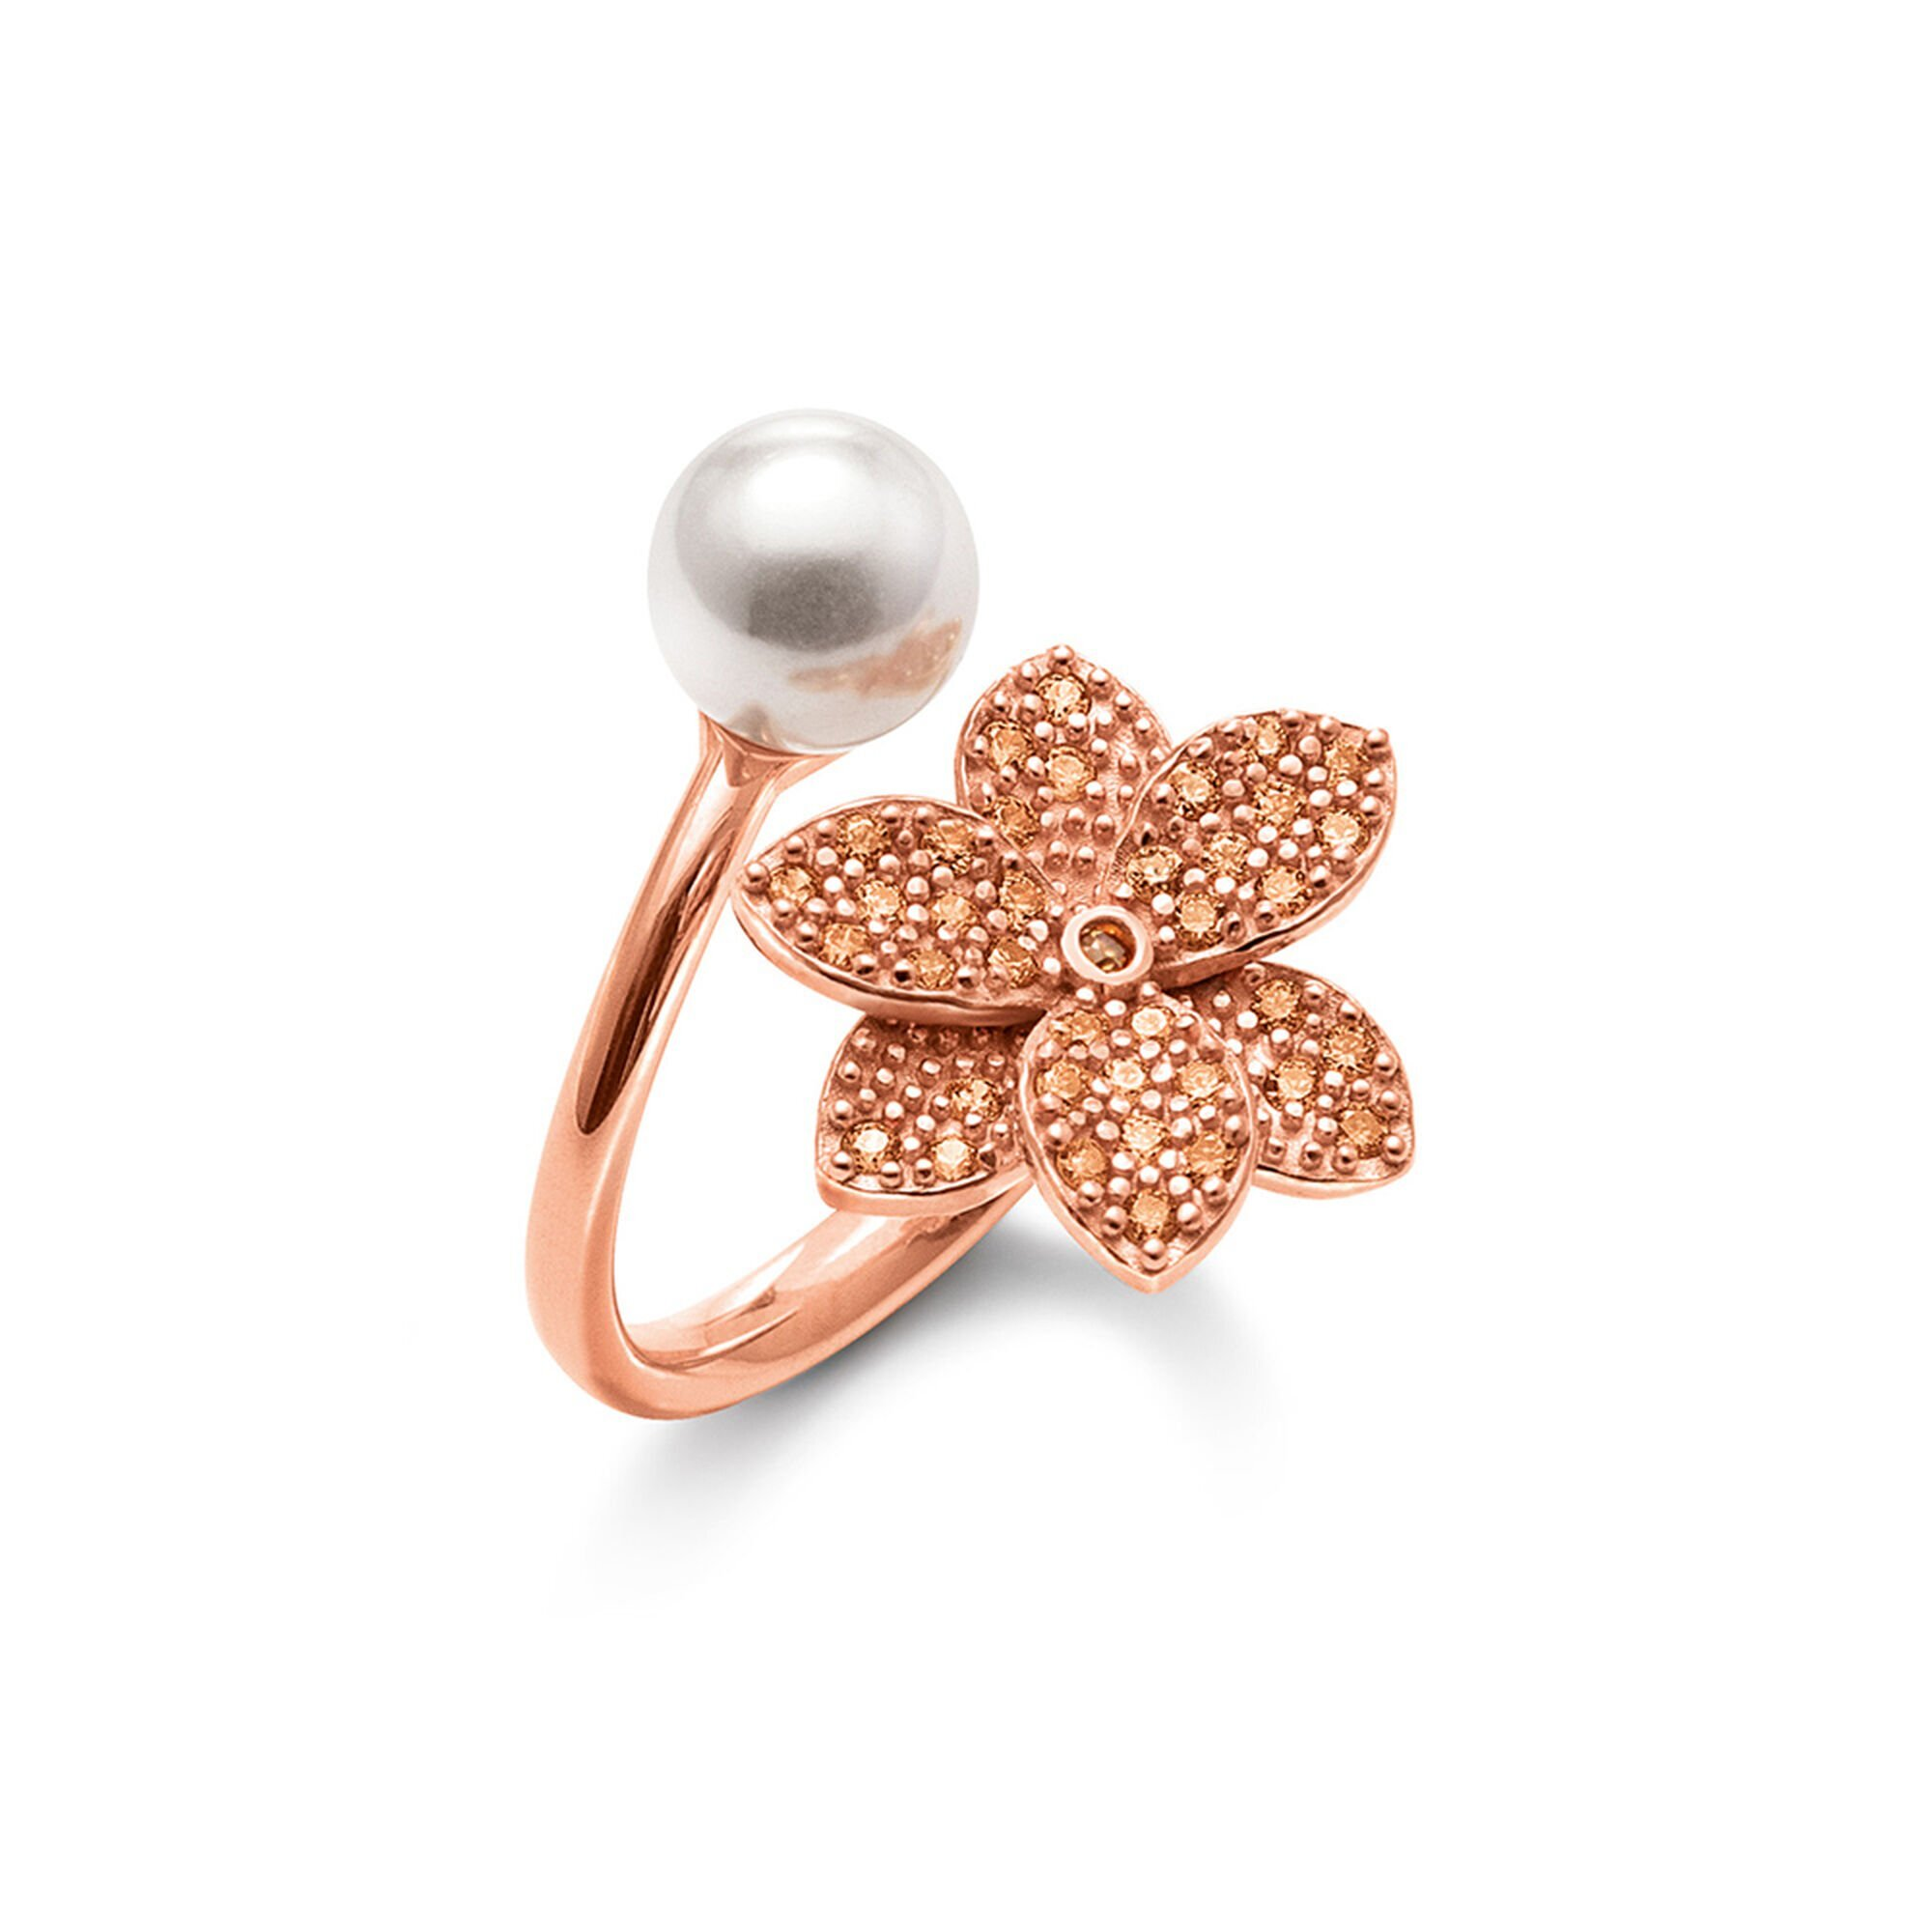 Blooming Grace Silver 925 18k Rose Gold Plated Ring